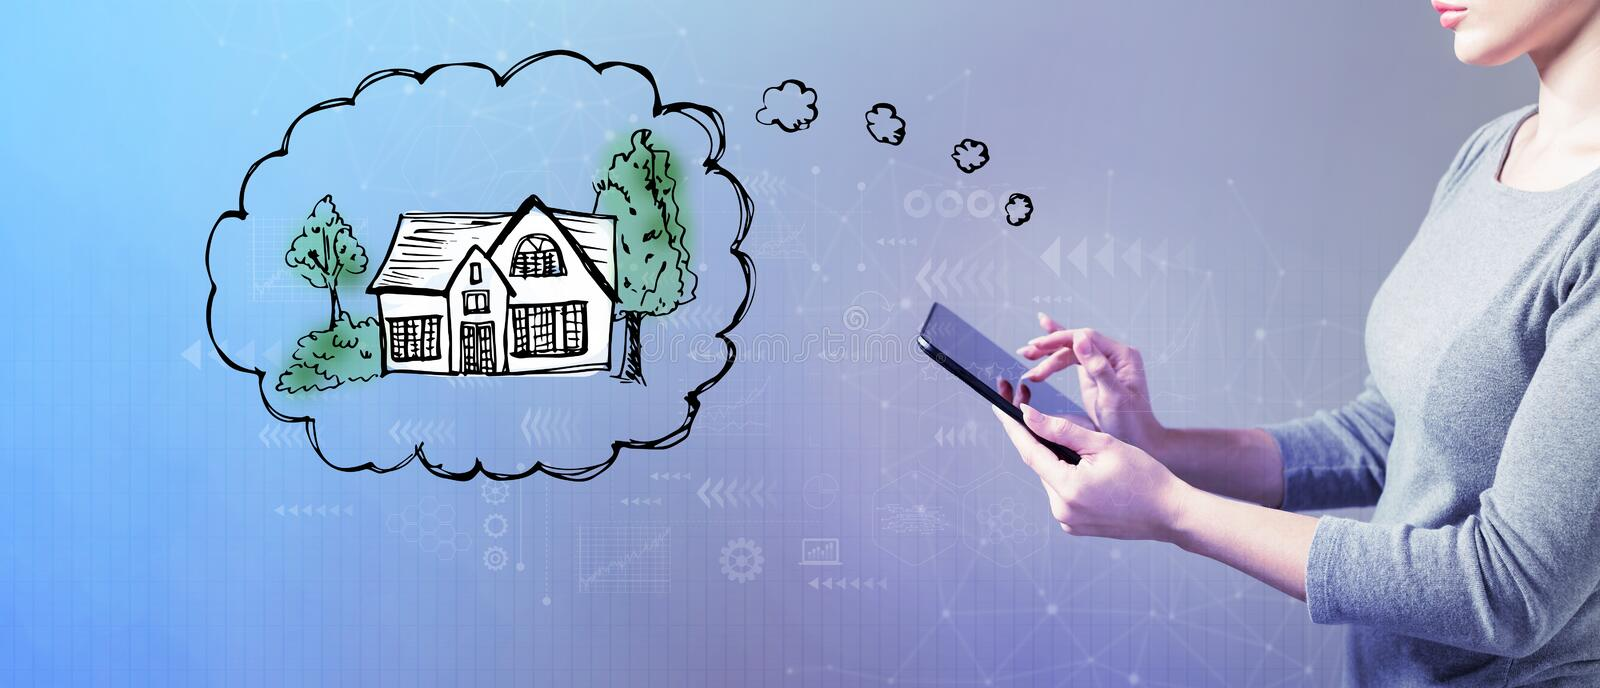 Dreaming of new home with woman using a tablet royalty free stock photography